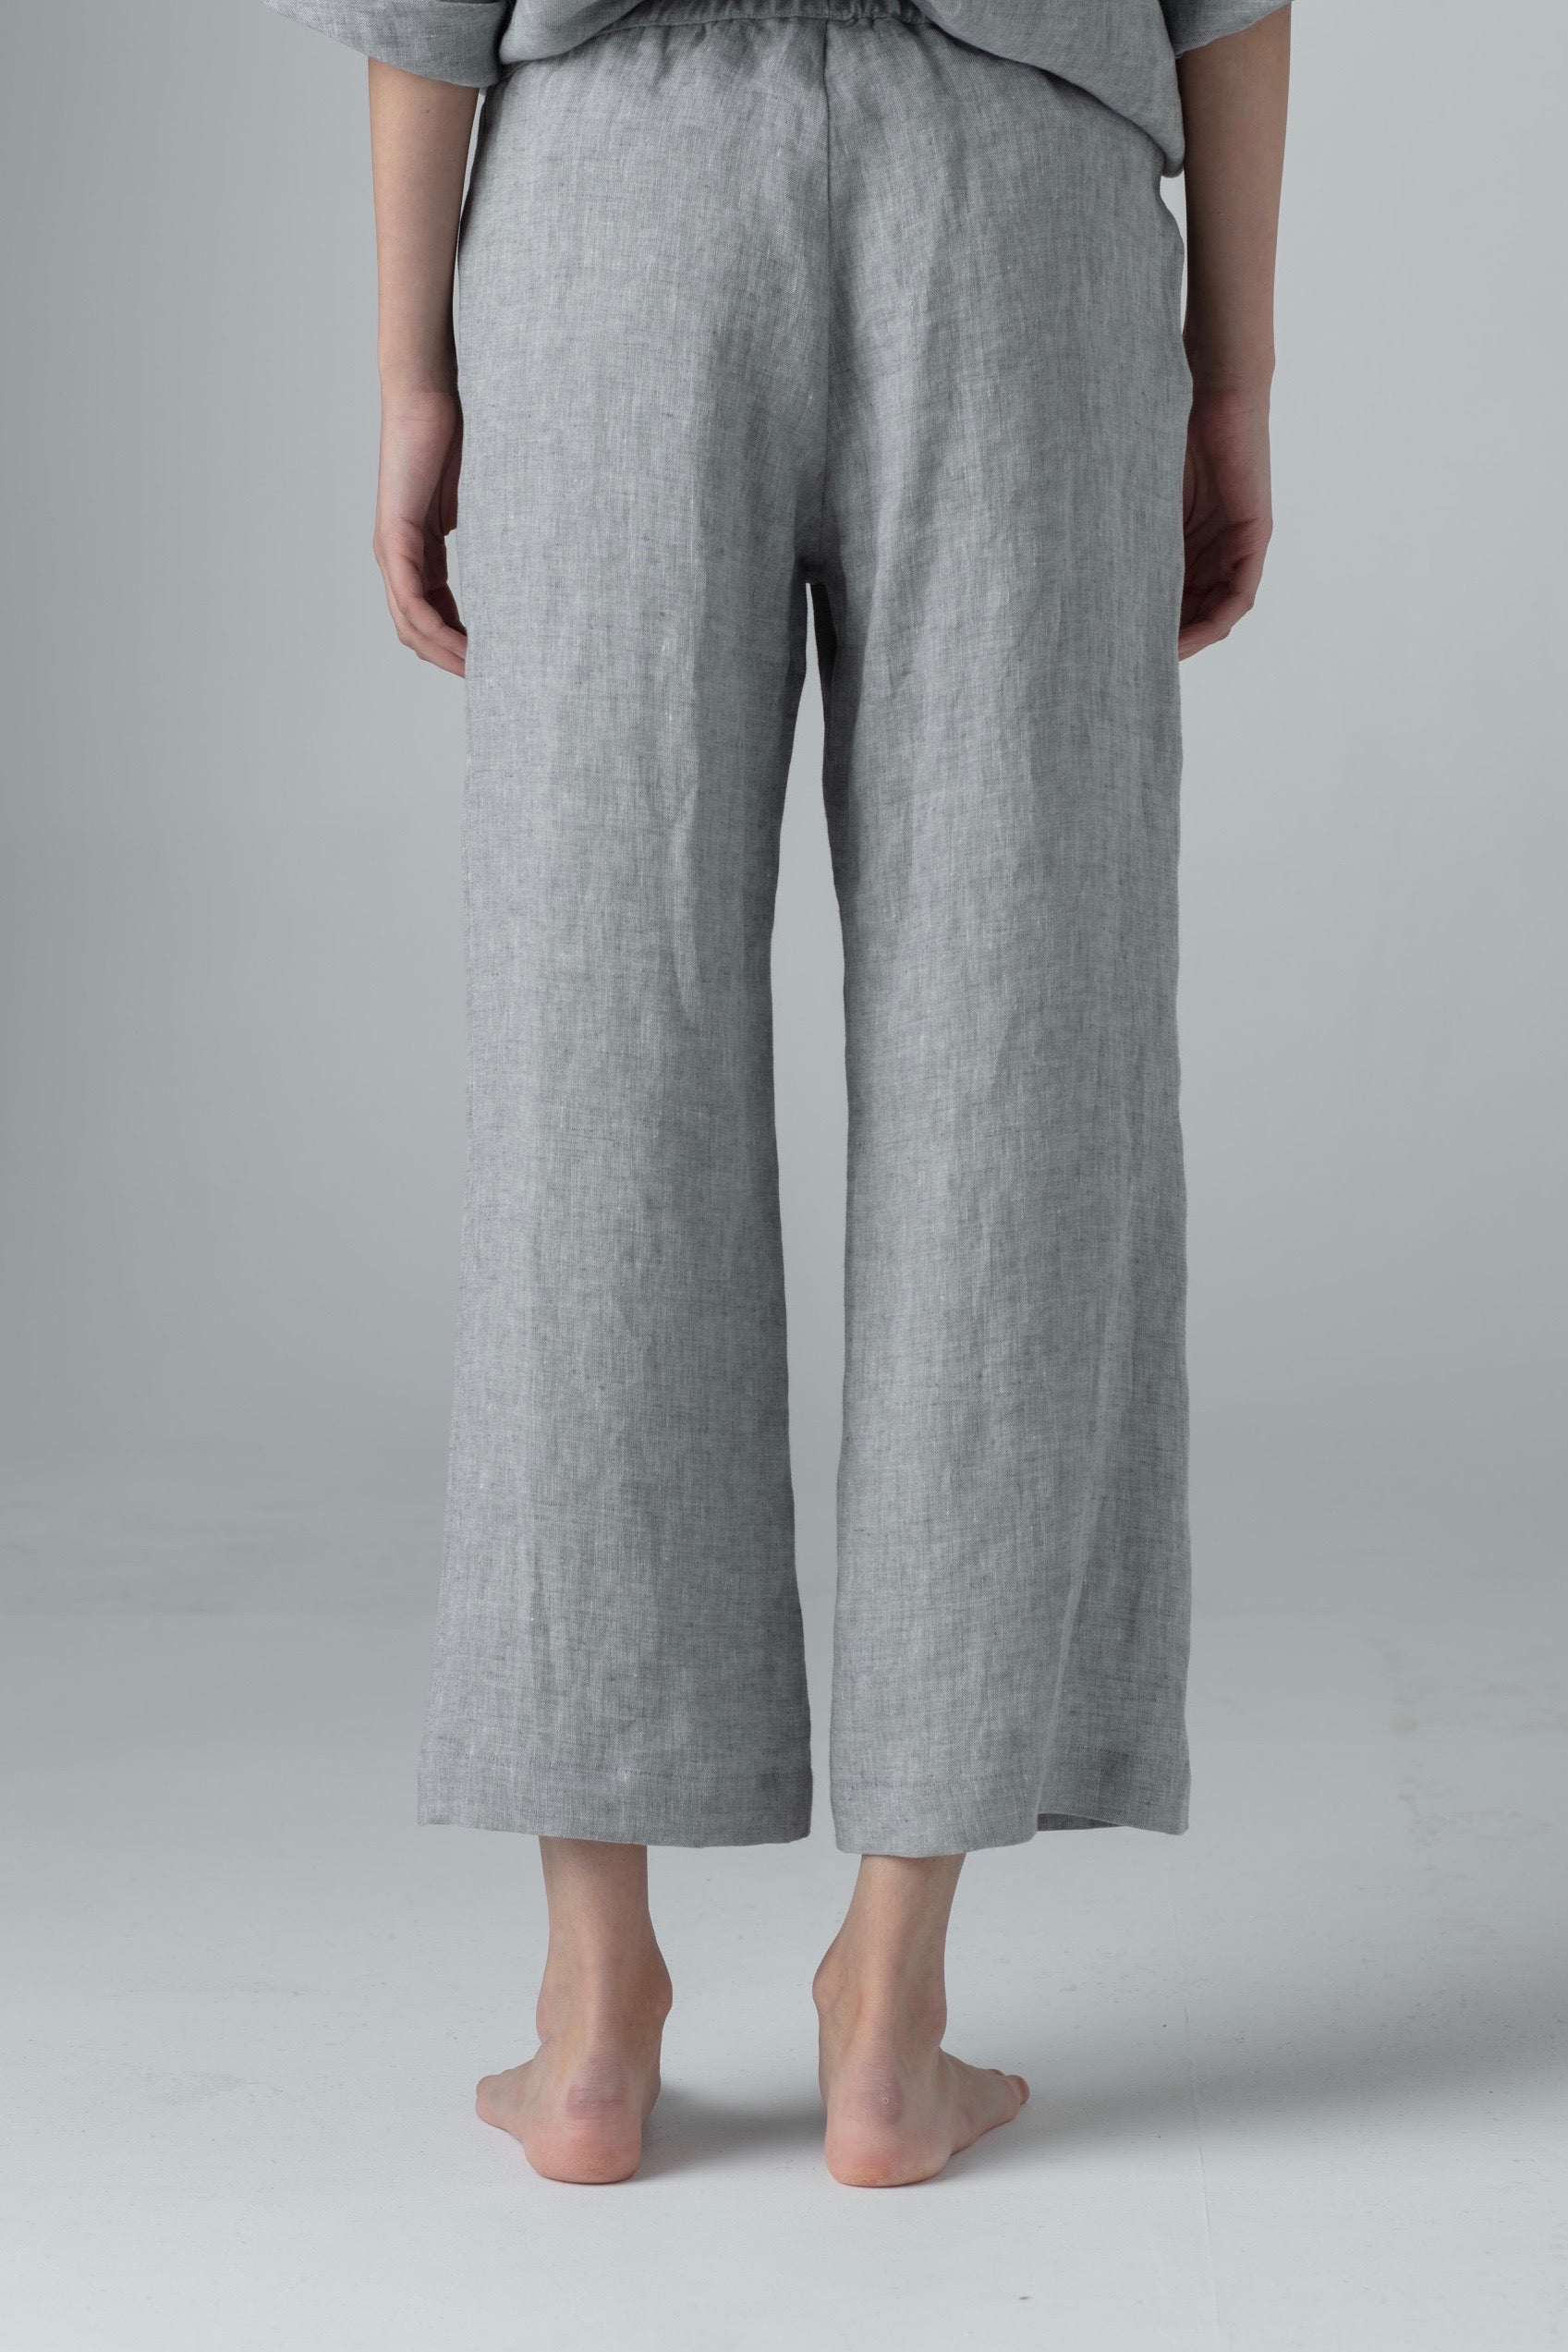 STRAIGHT PANTS medium gray